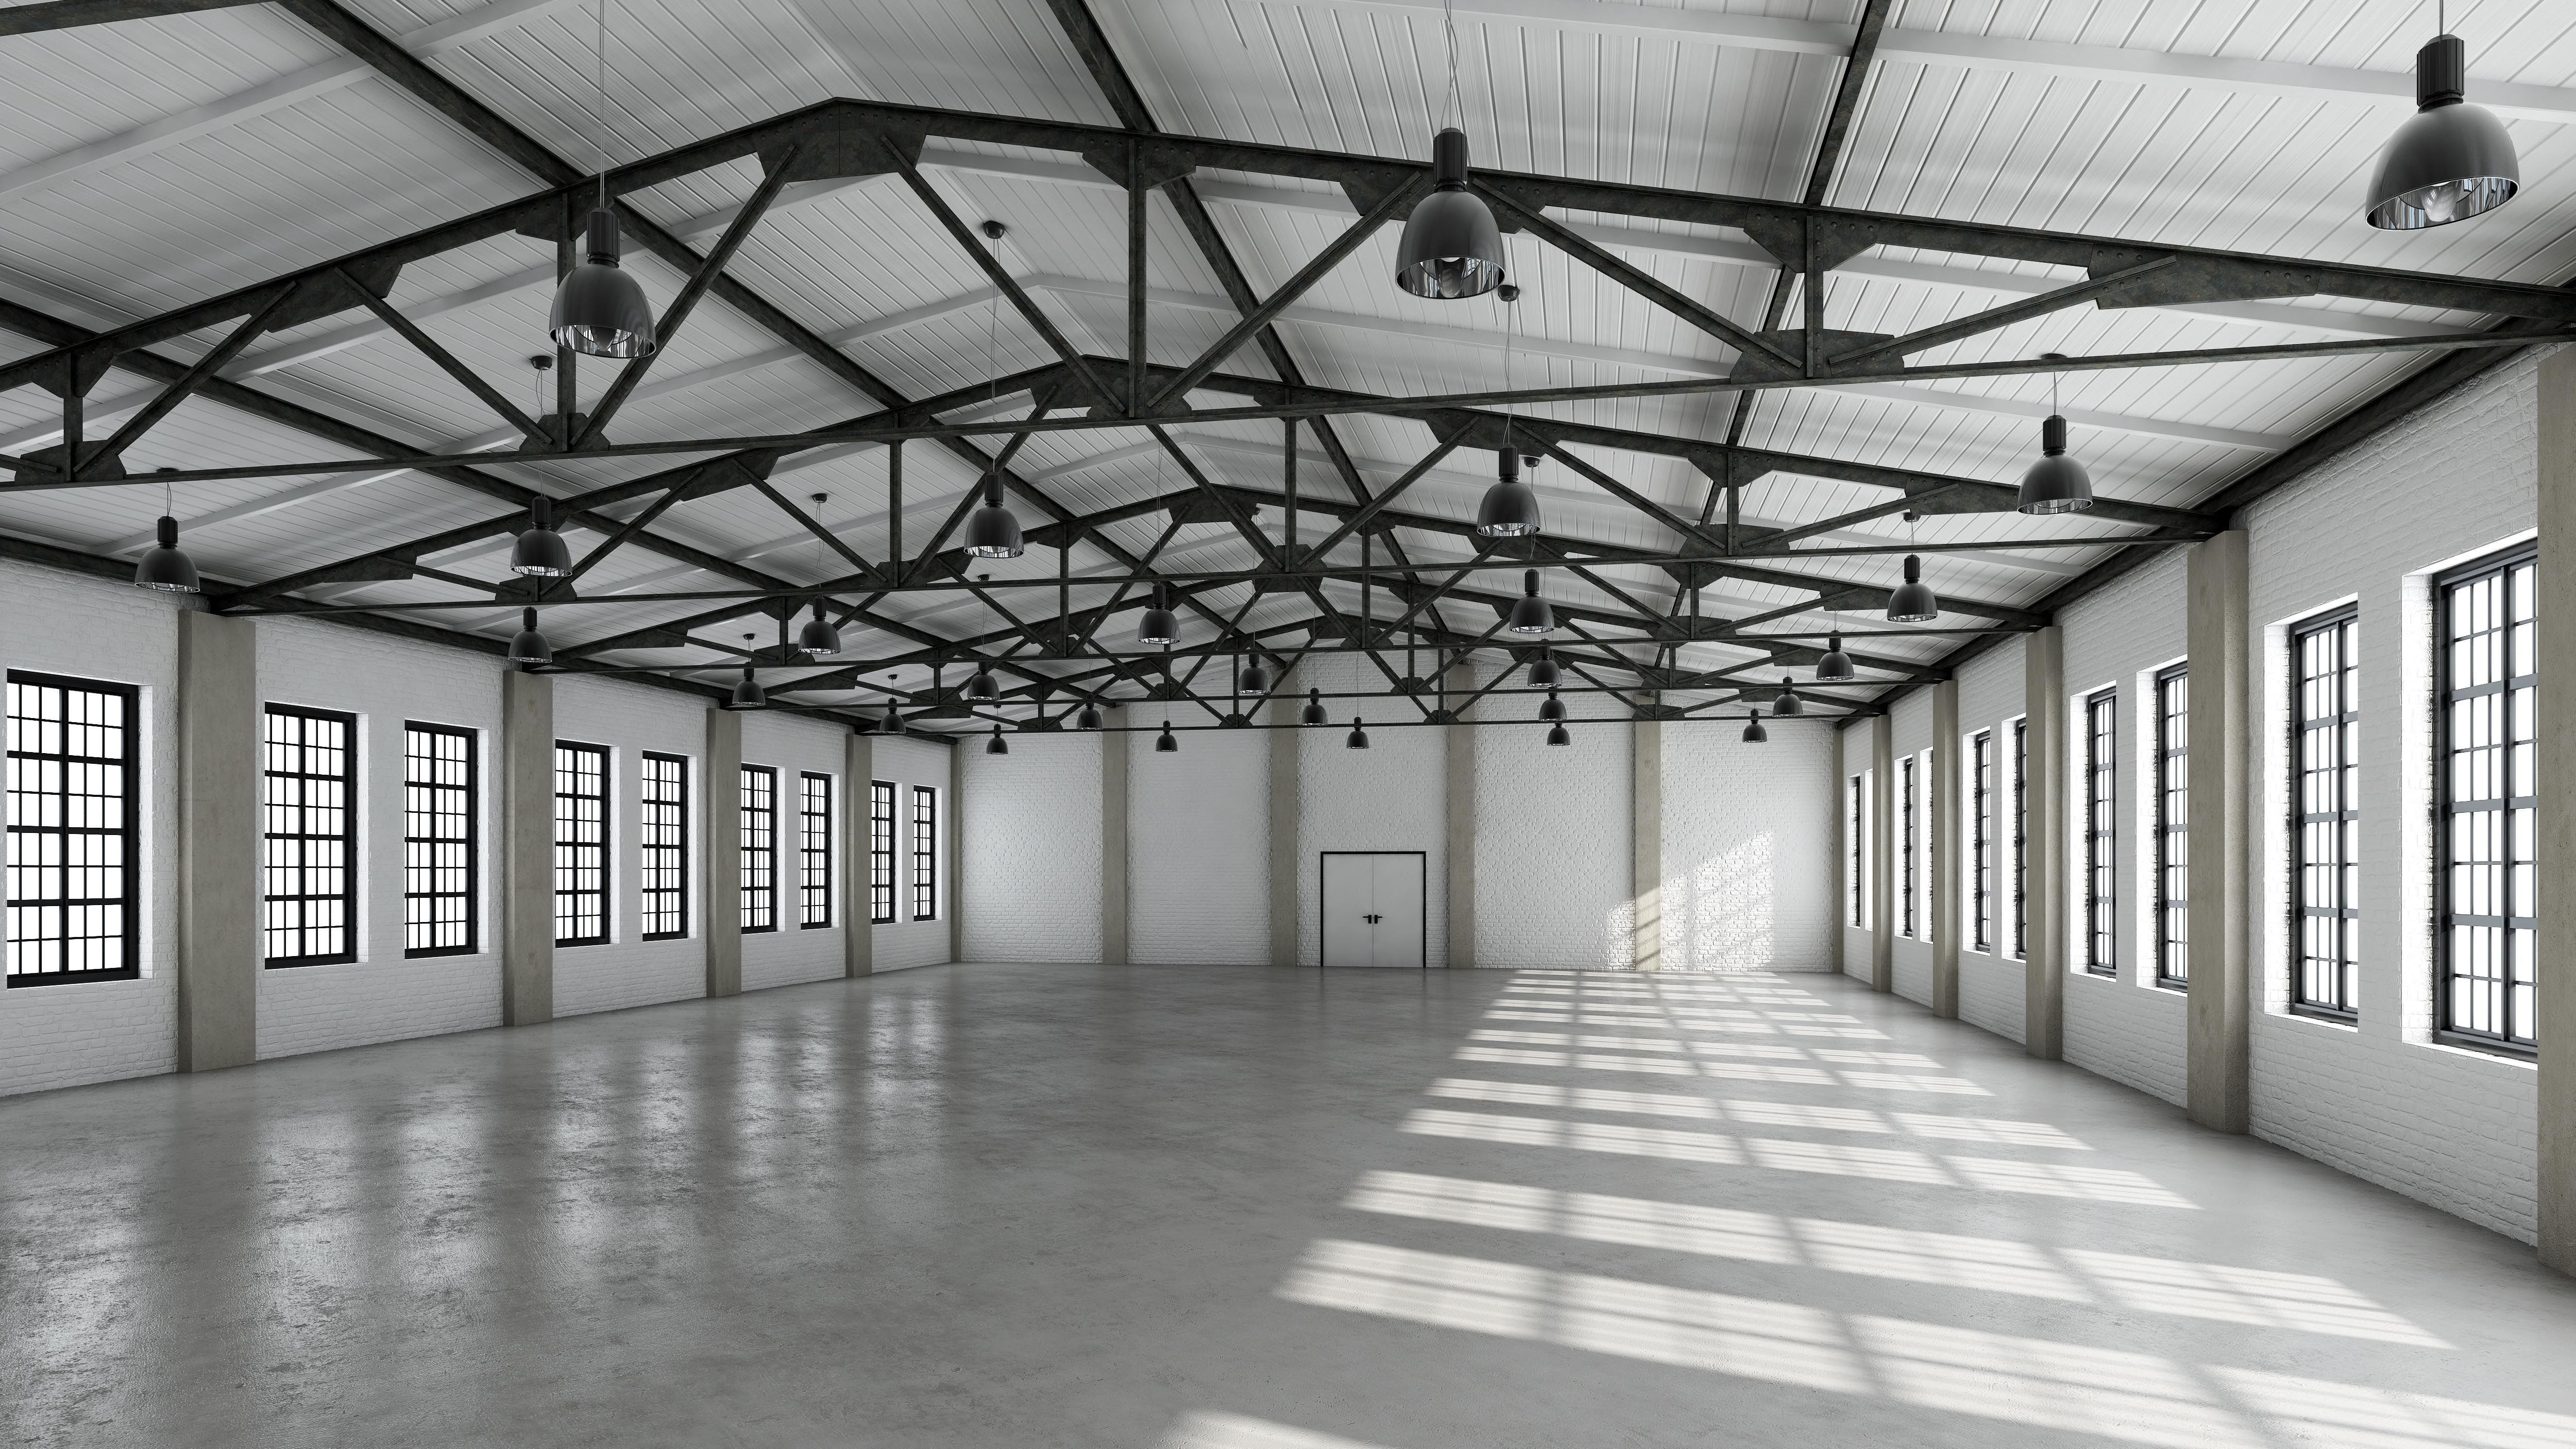 Warehouse Lighting As All Commercial And Industrial Lighting Must